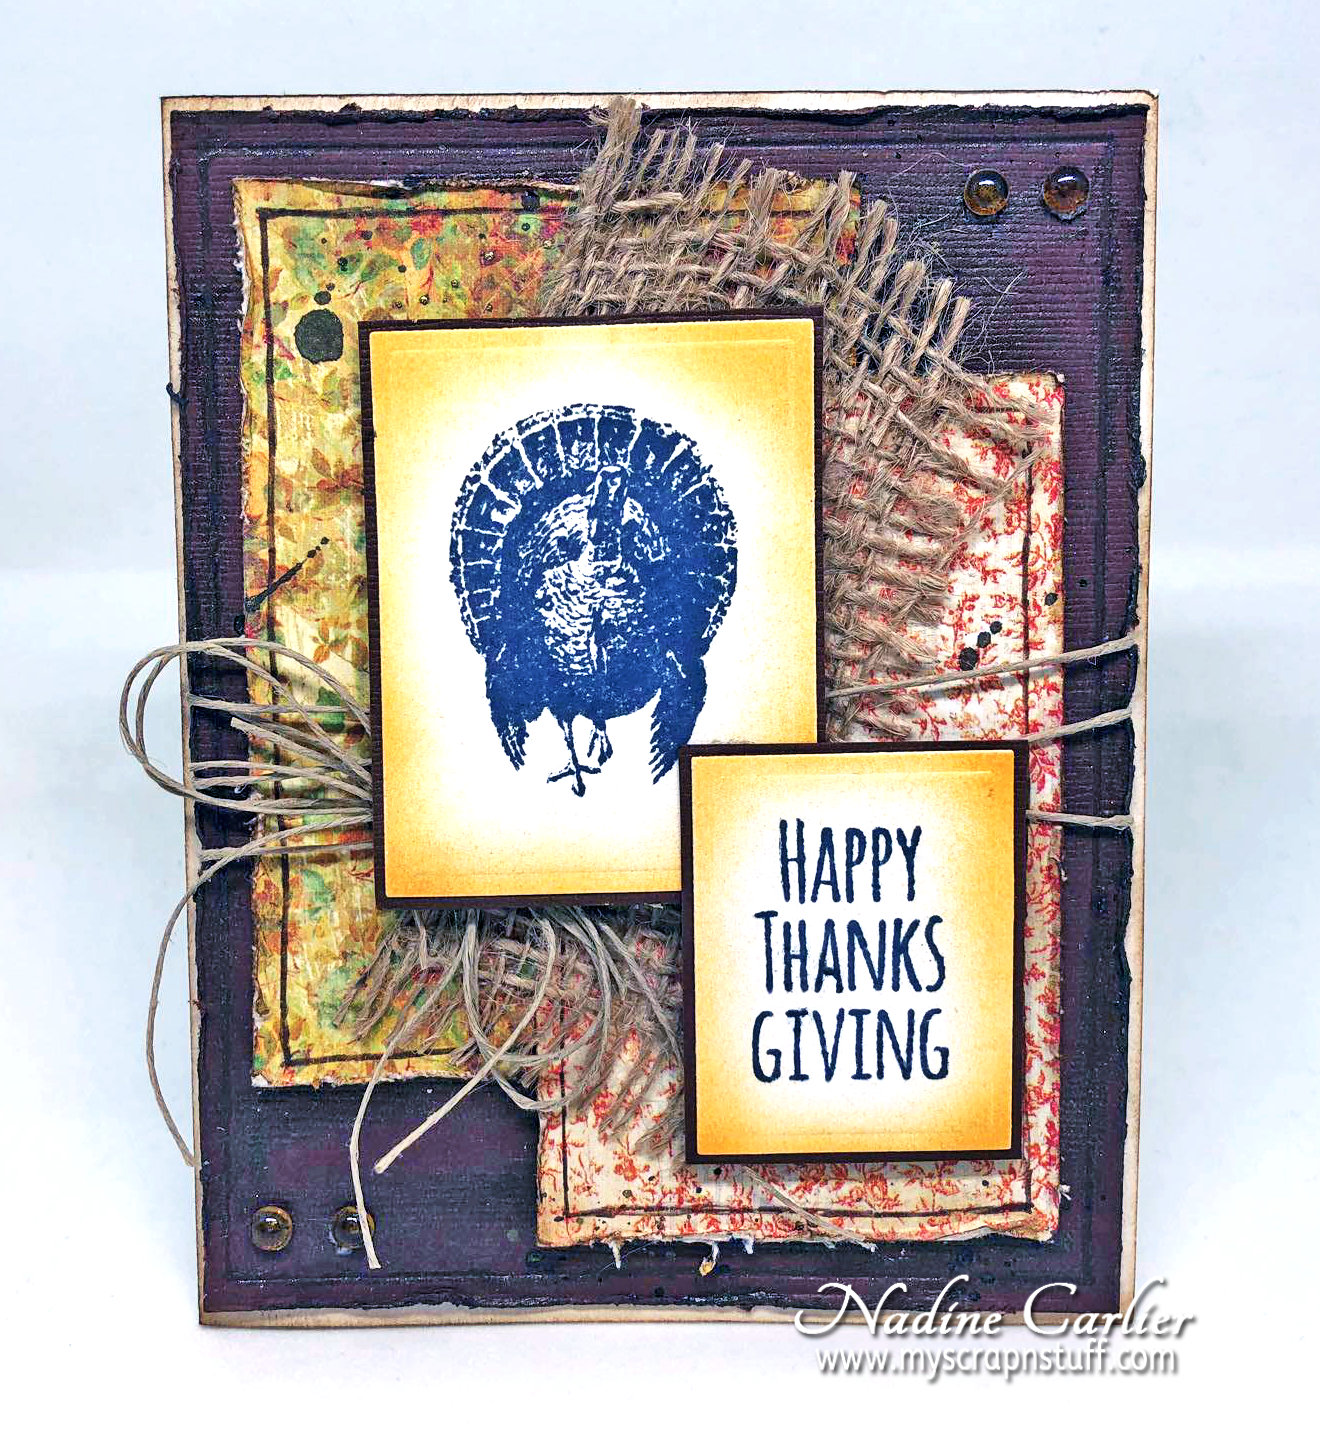 Happy Thanksgiving Card with Brutus Monroe by Nadine Carlier